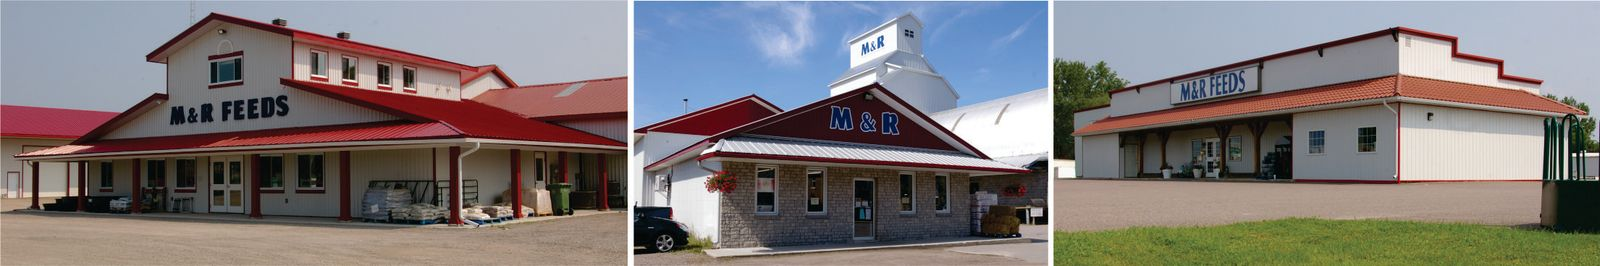 M and R feeds - 3 locations to serve you